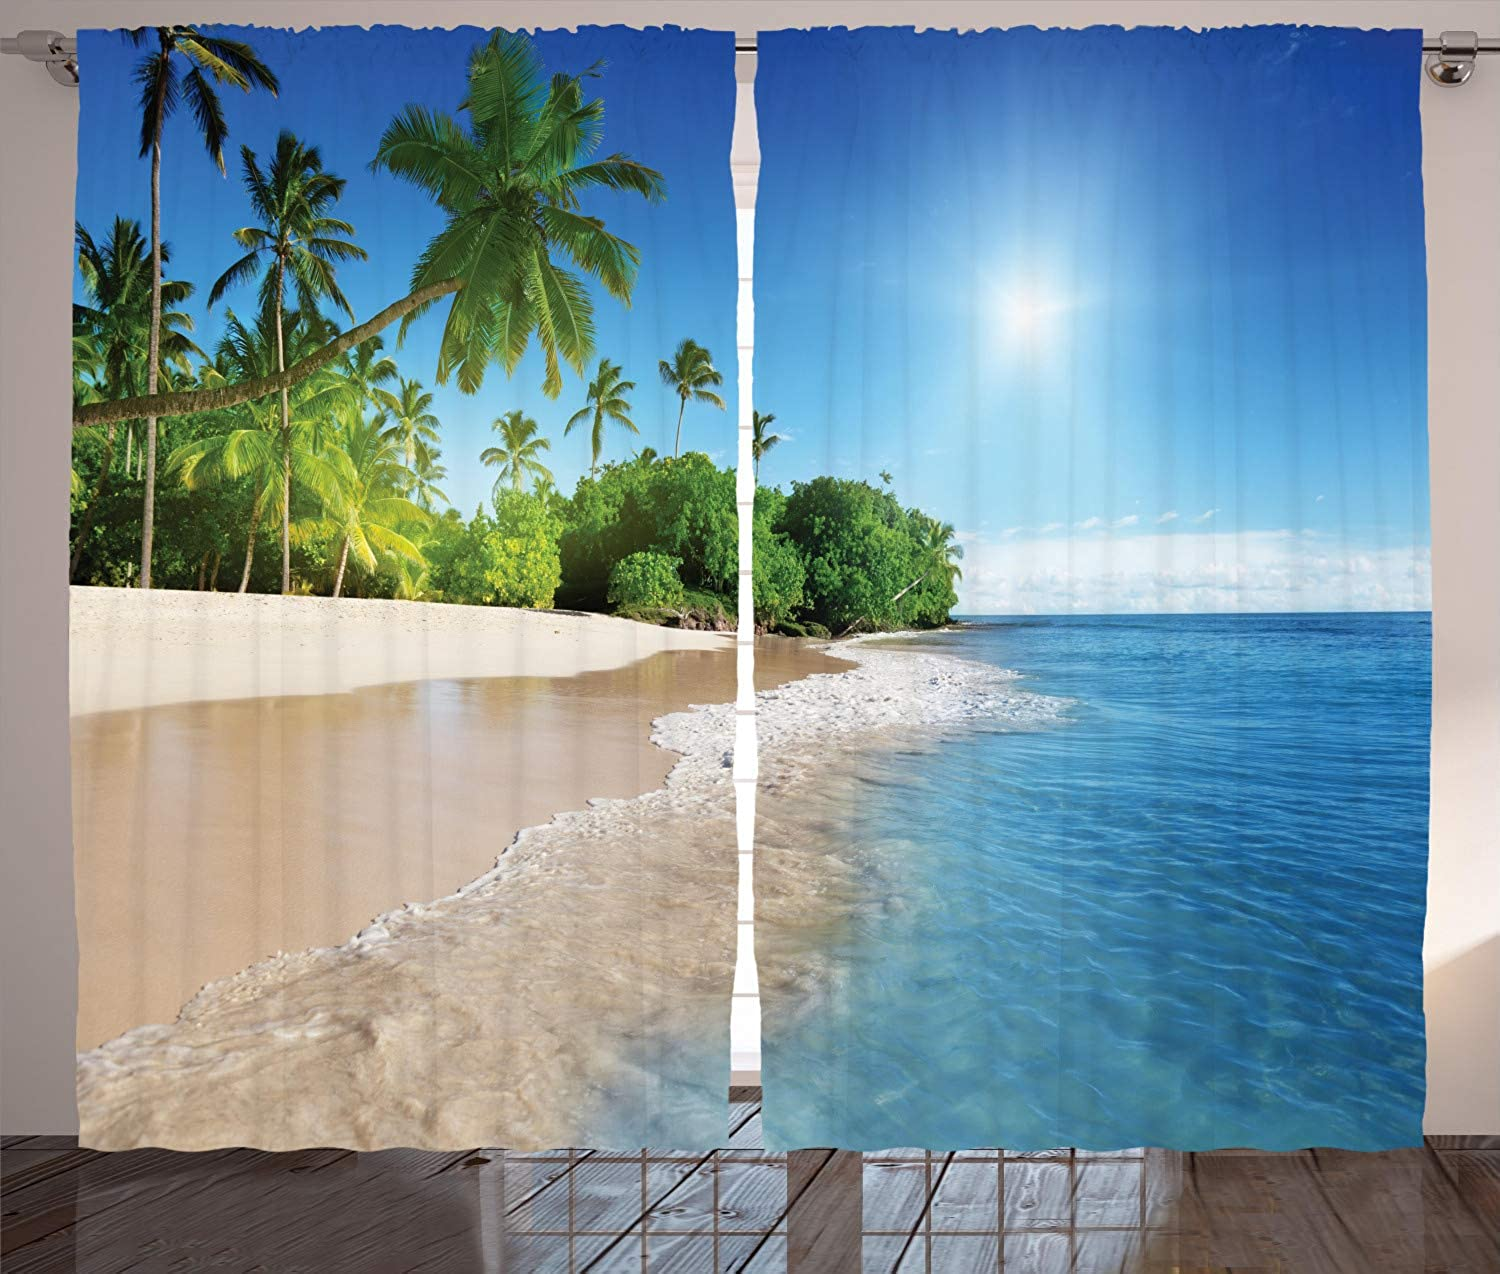 Ambesonne bluee Curtains Decor, Ocean Tropical Palm Trees on Sunny Island Beach Scene Panoramic View Picture, Living Room Bedroom Window Drapes 2 Panel Set, 108 W X 84 L Inches, bluee Green and White